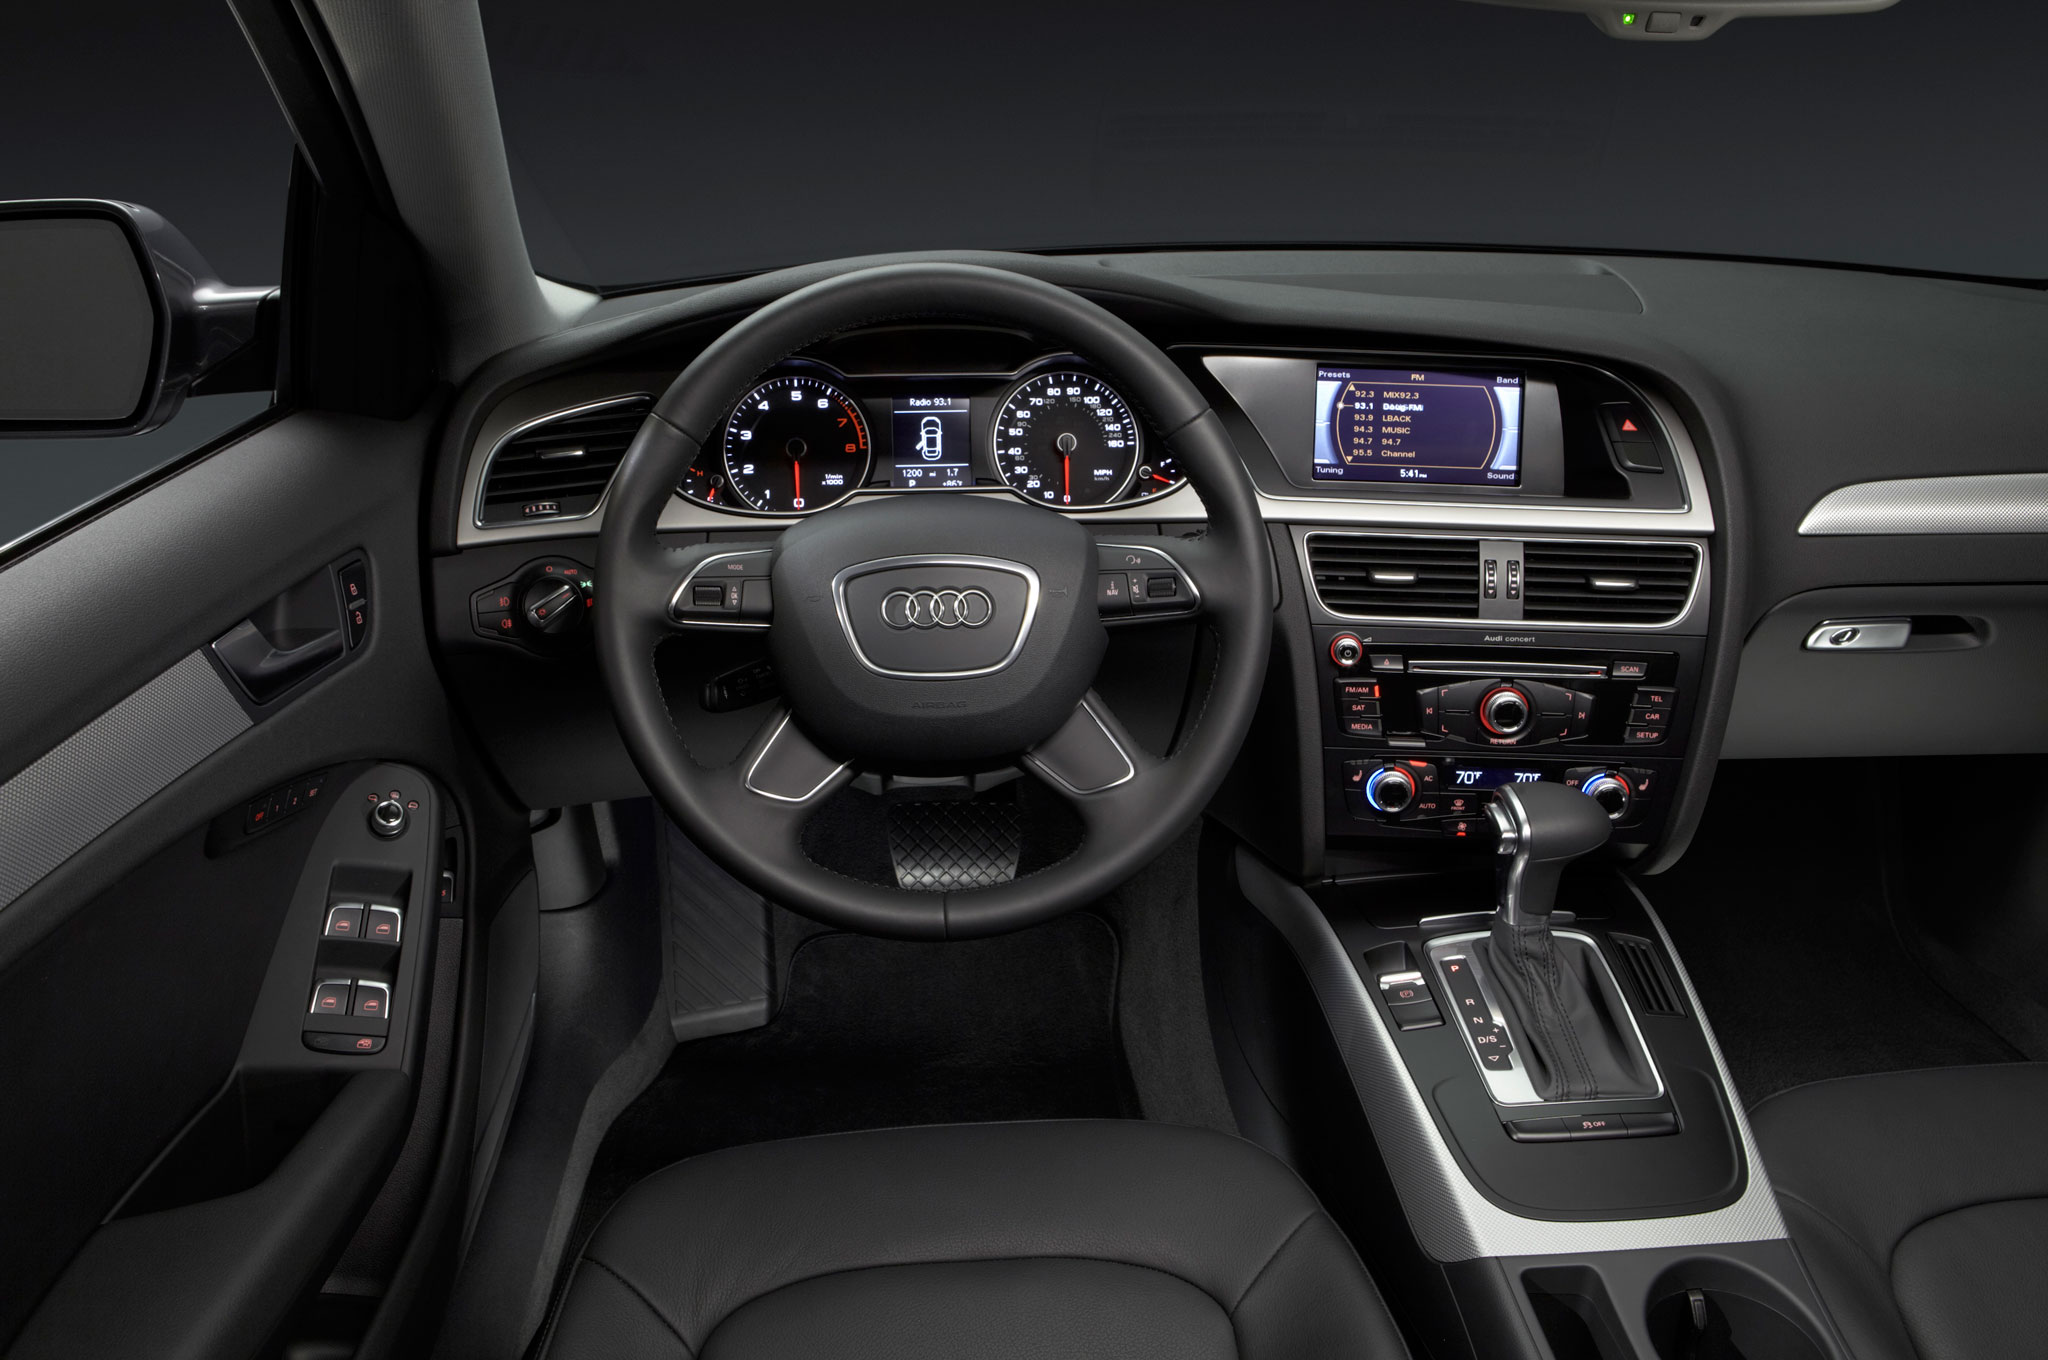 2014 Audi Lineup Pricing Revealed From Q5 To A8 W12